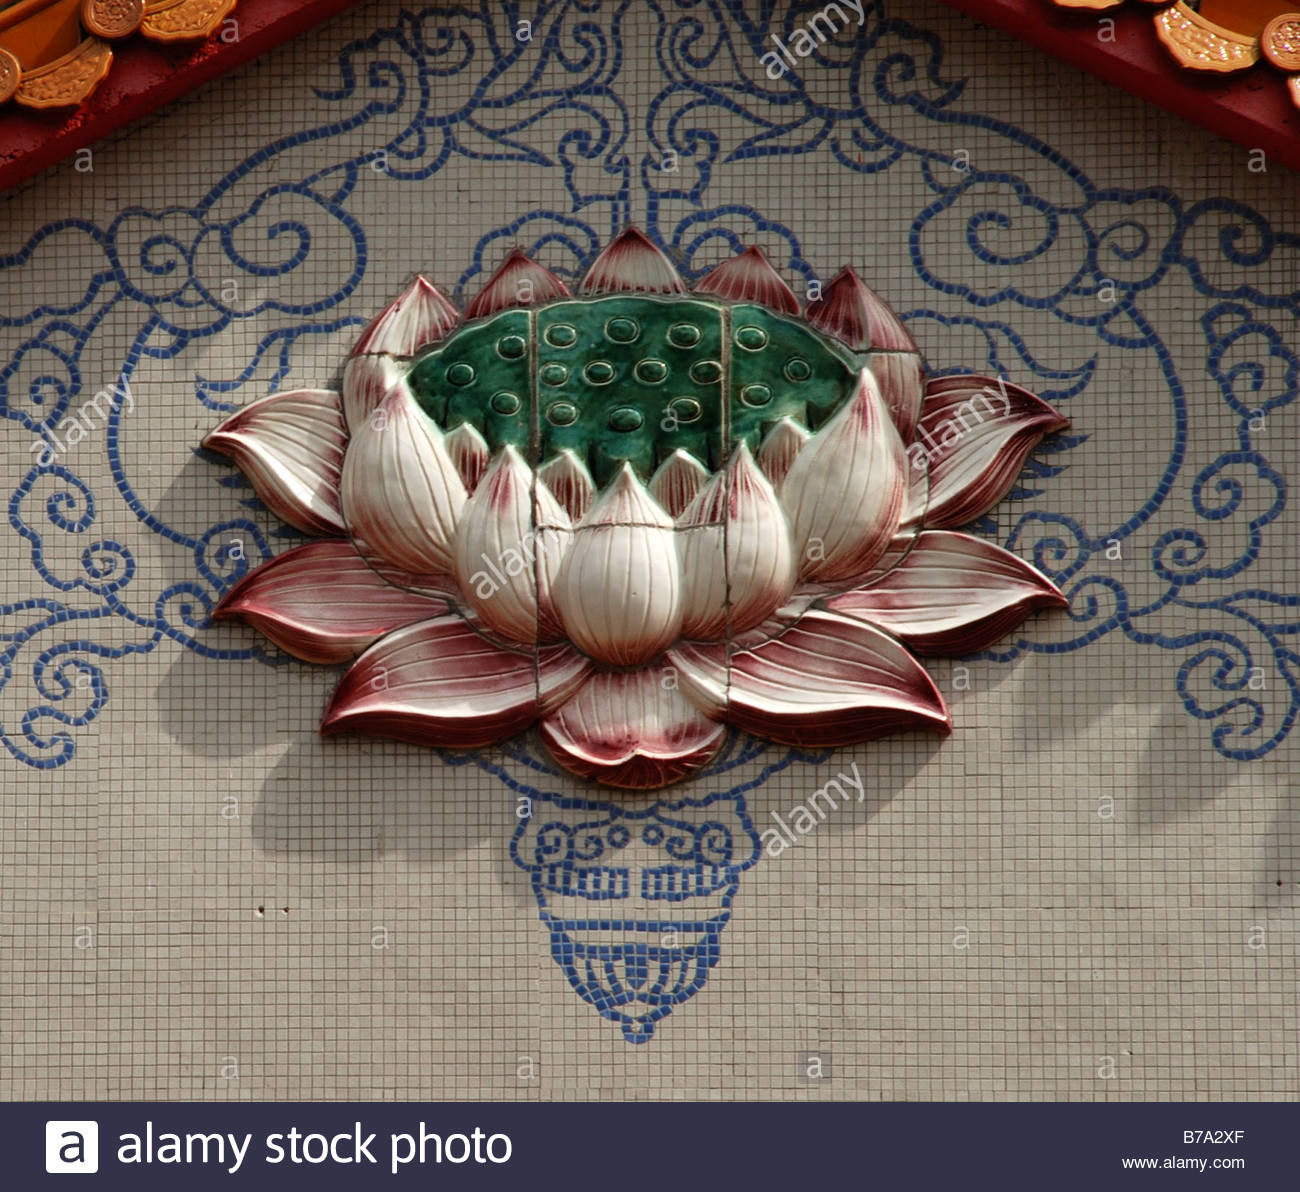 Large ceramic pink lotus flower on the tiled wall of temple sam poh large ceramic pink lotus flower on the tiled wall of temple sam poh buddhist temple binchang cameron highlands pahang malaysia izmirmasajfo